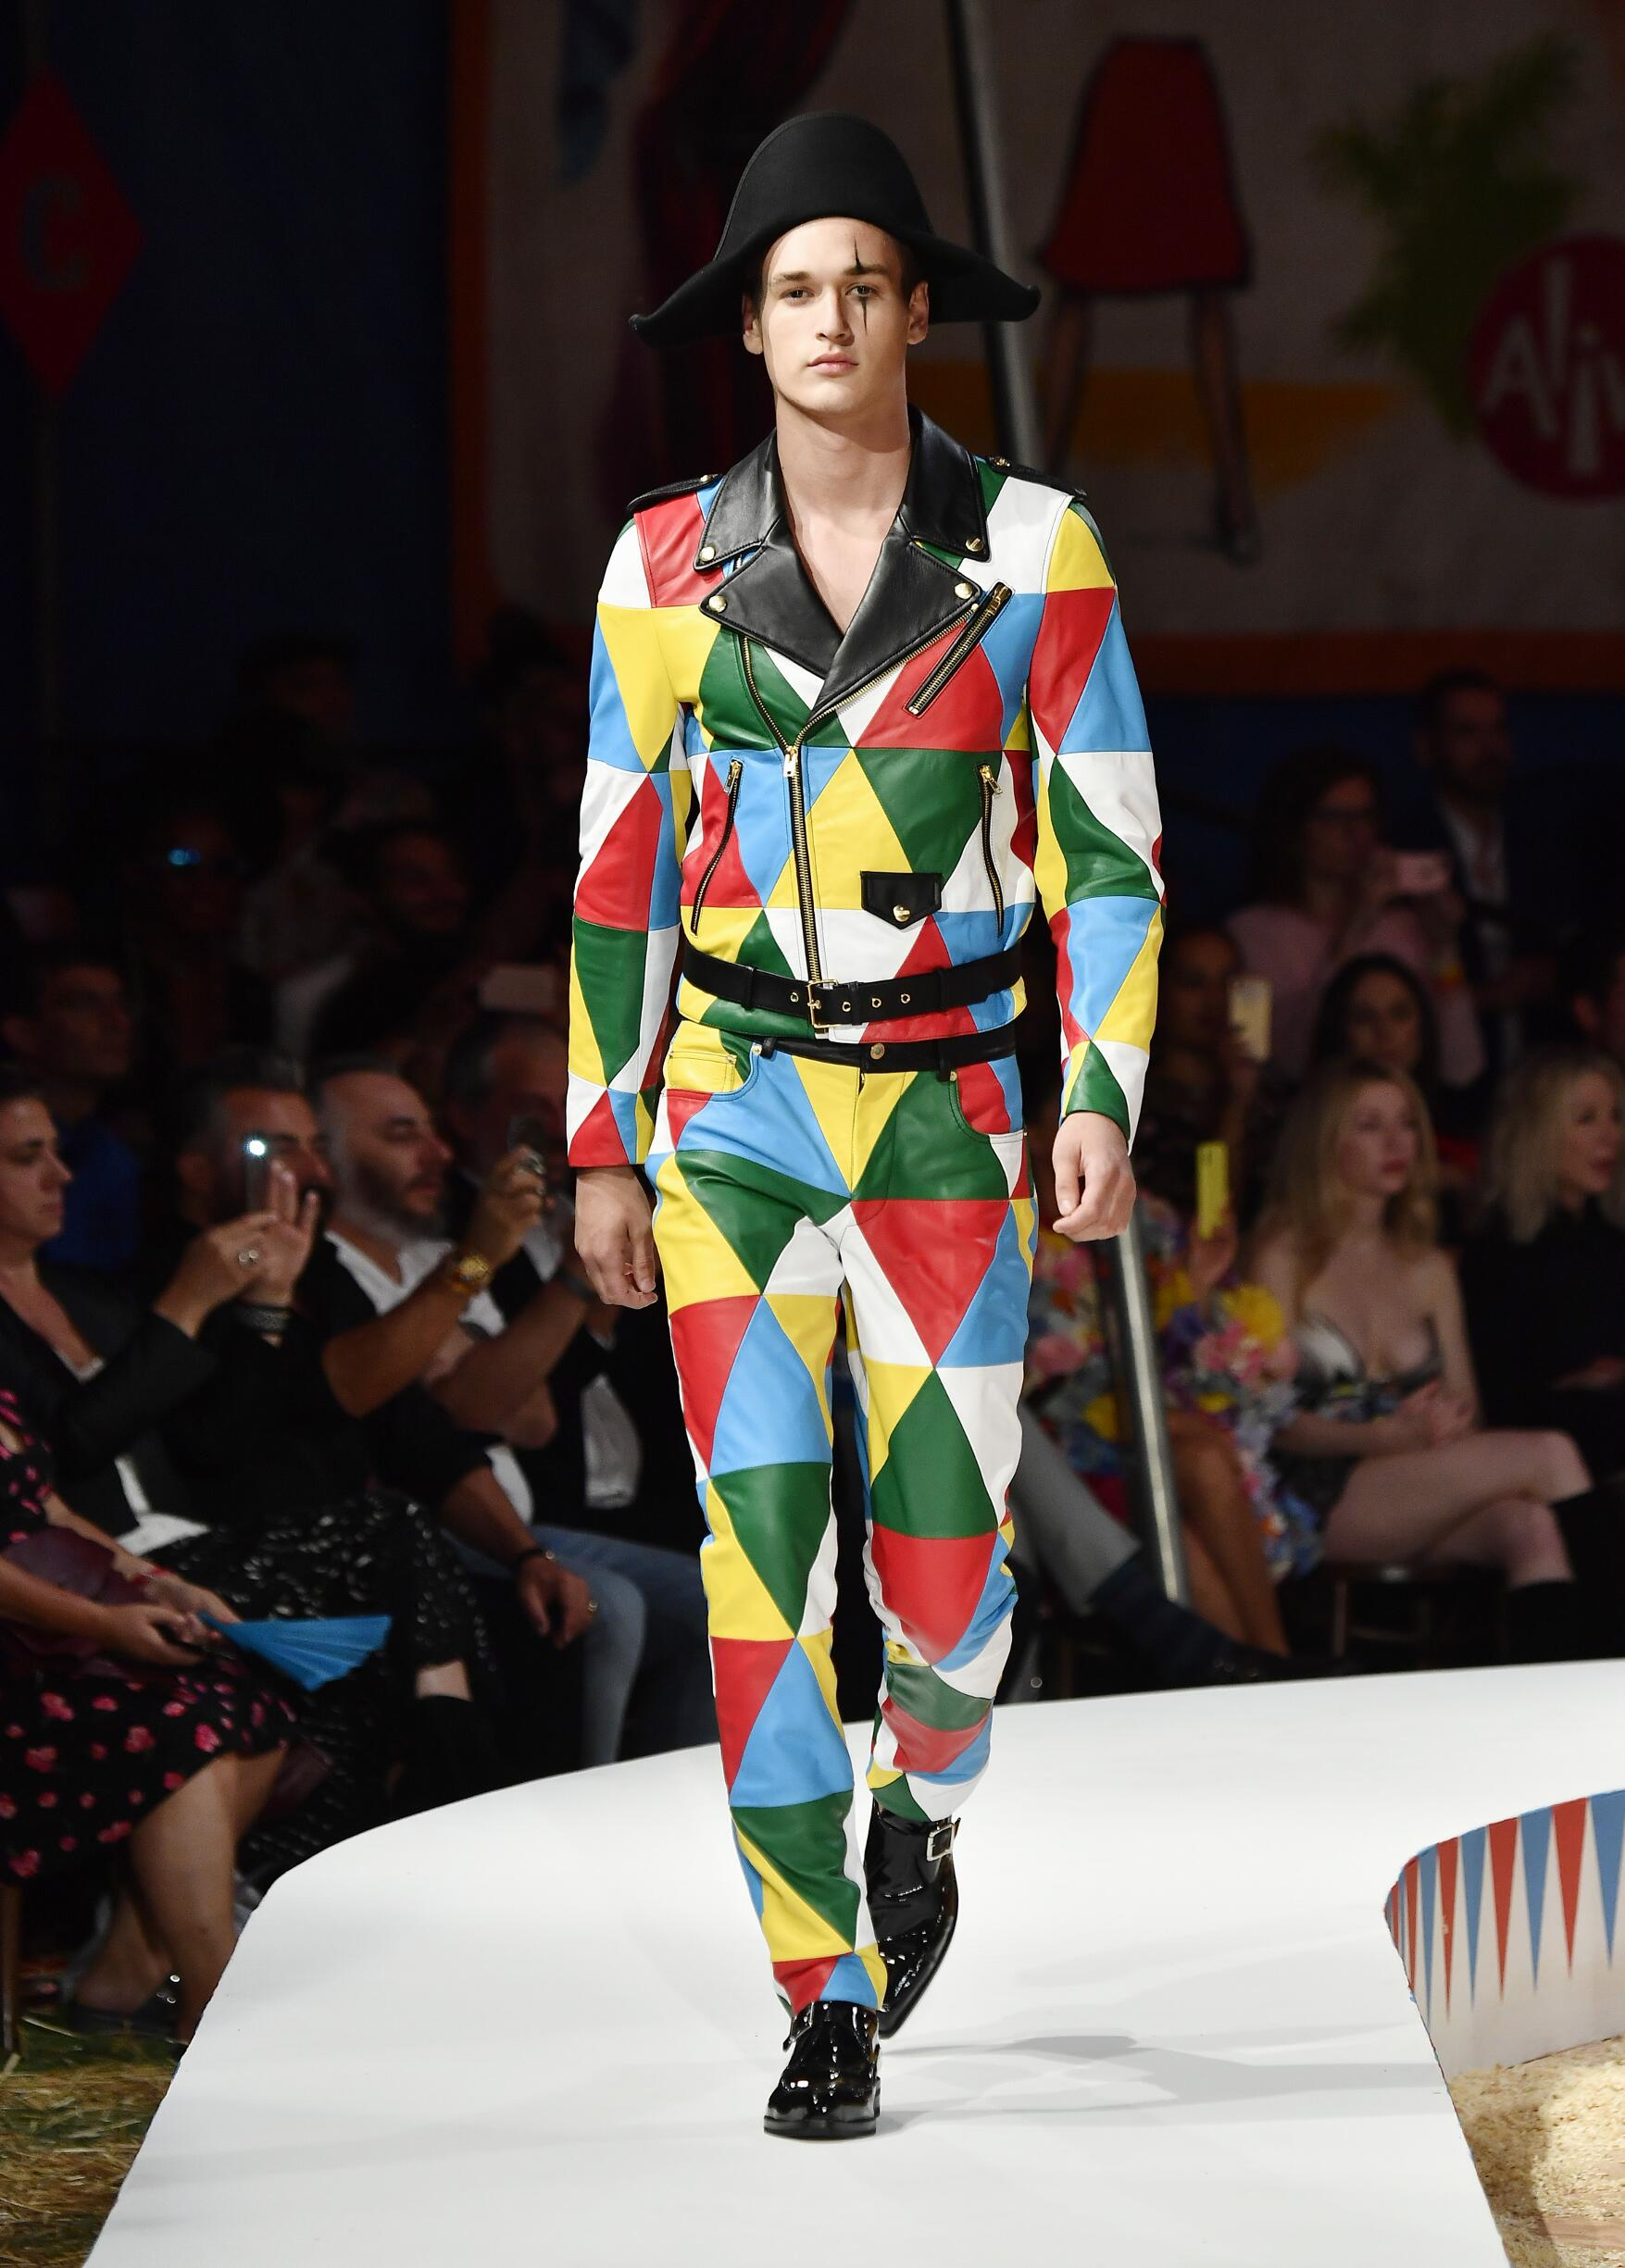 Moschino Spring Summer 2019 Menswear and Women's Resort Collection Look 51 Los Angeles